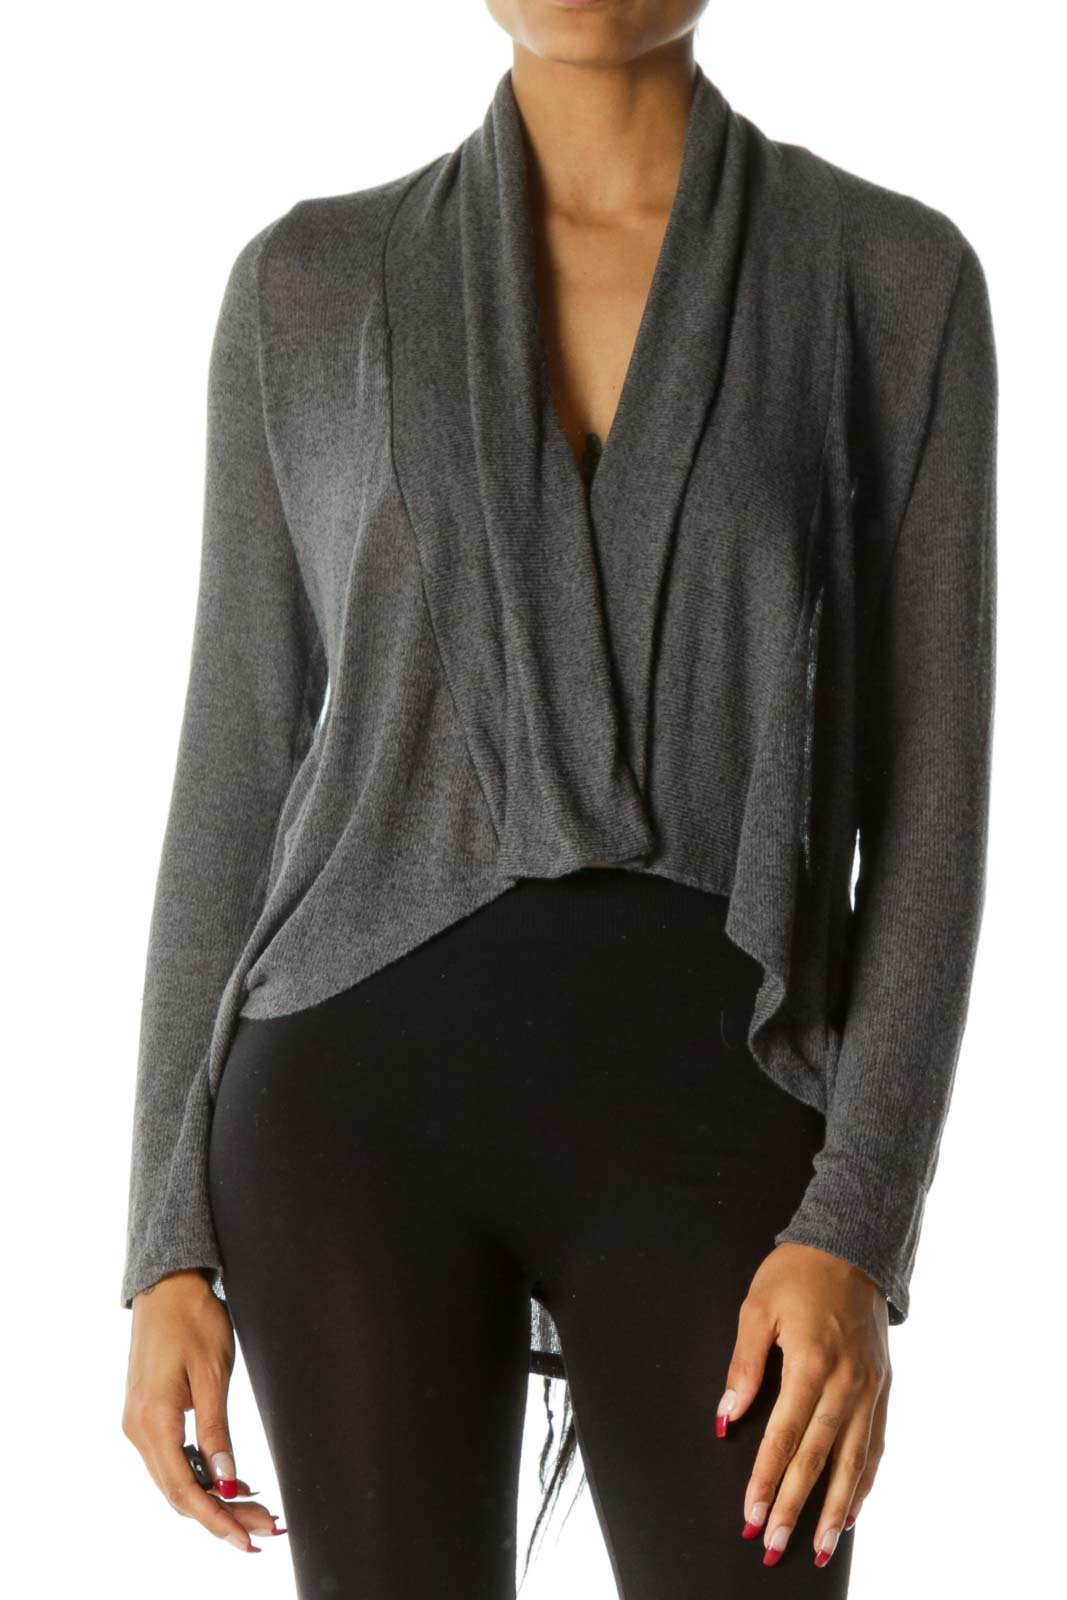 Gray Long Sleeve Stretch Knit Open Cardigan Front